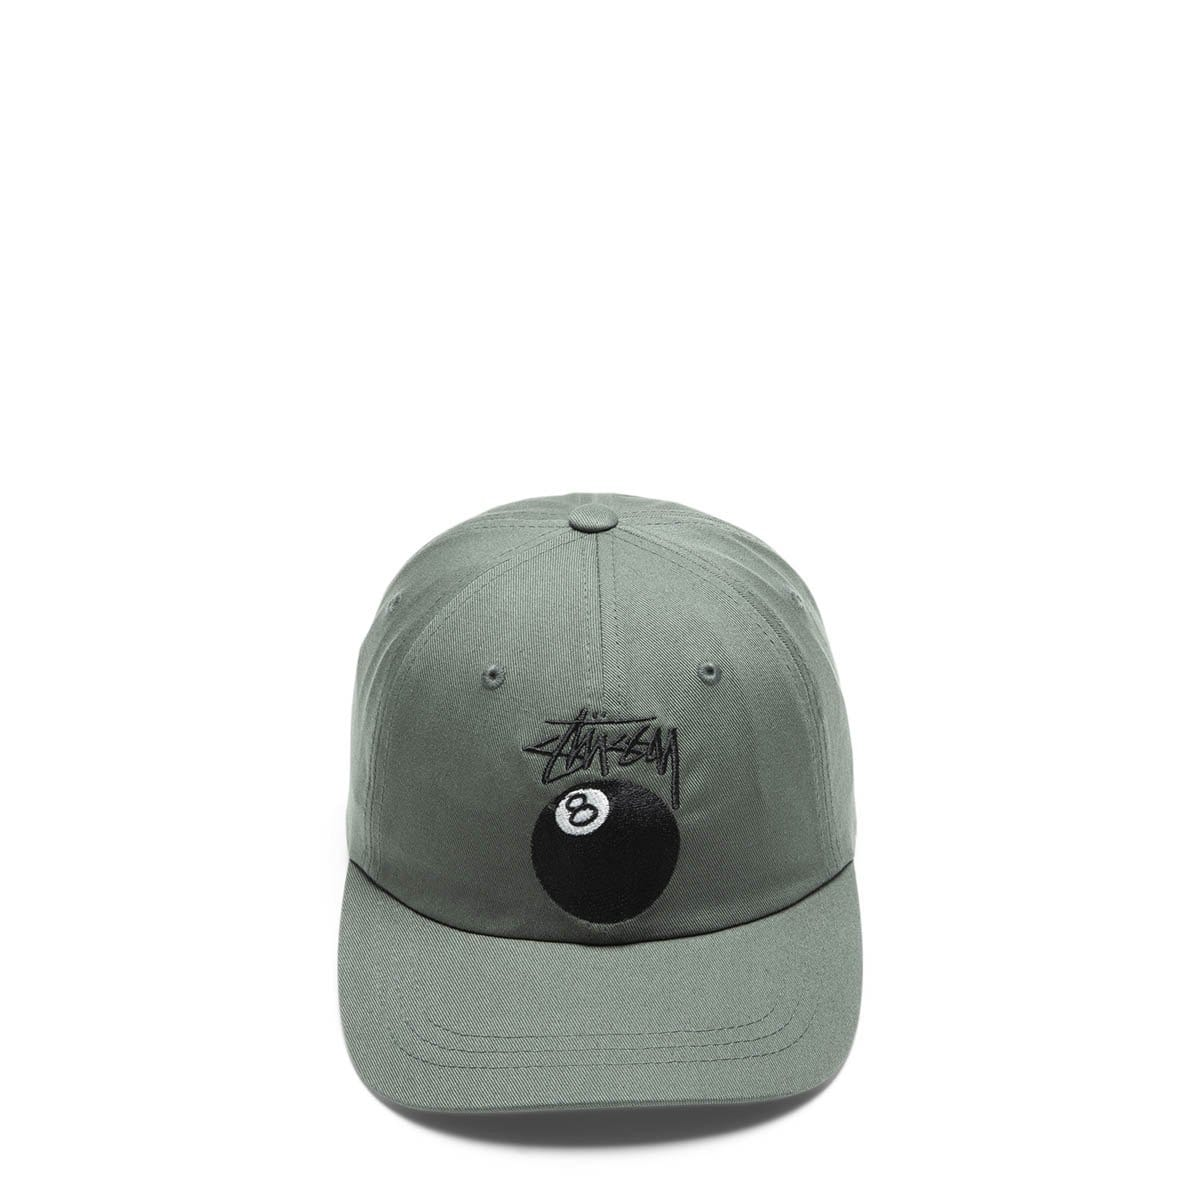 Stüssy Headwear OLIVE / OS STOCK 8 BALL LOW PRO CAP